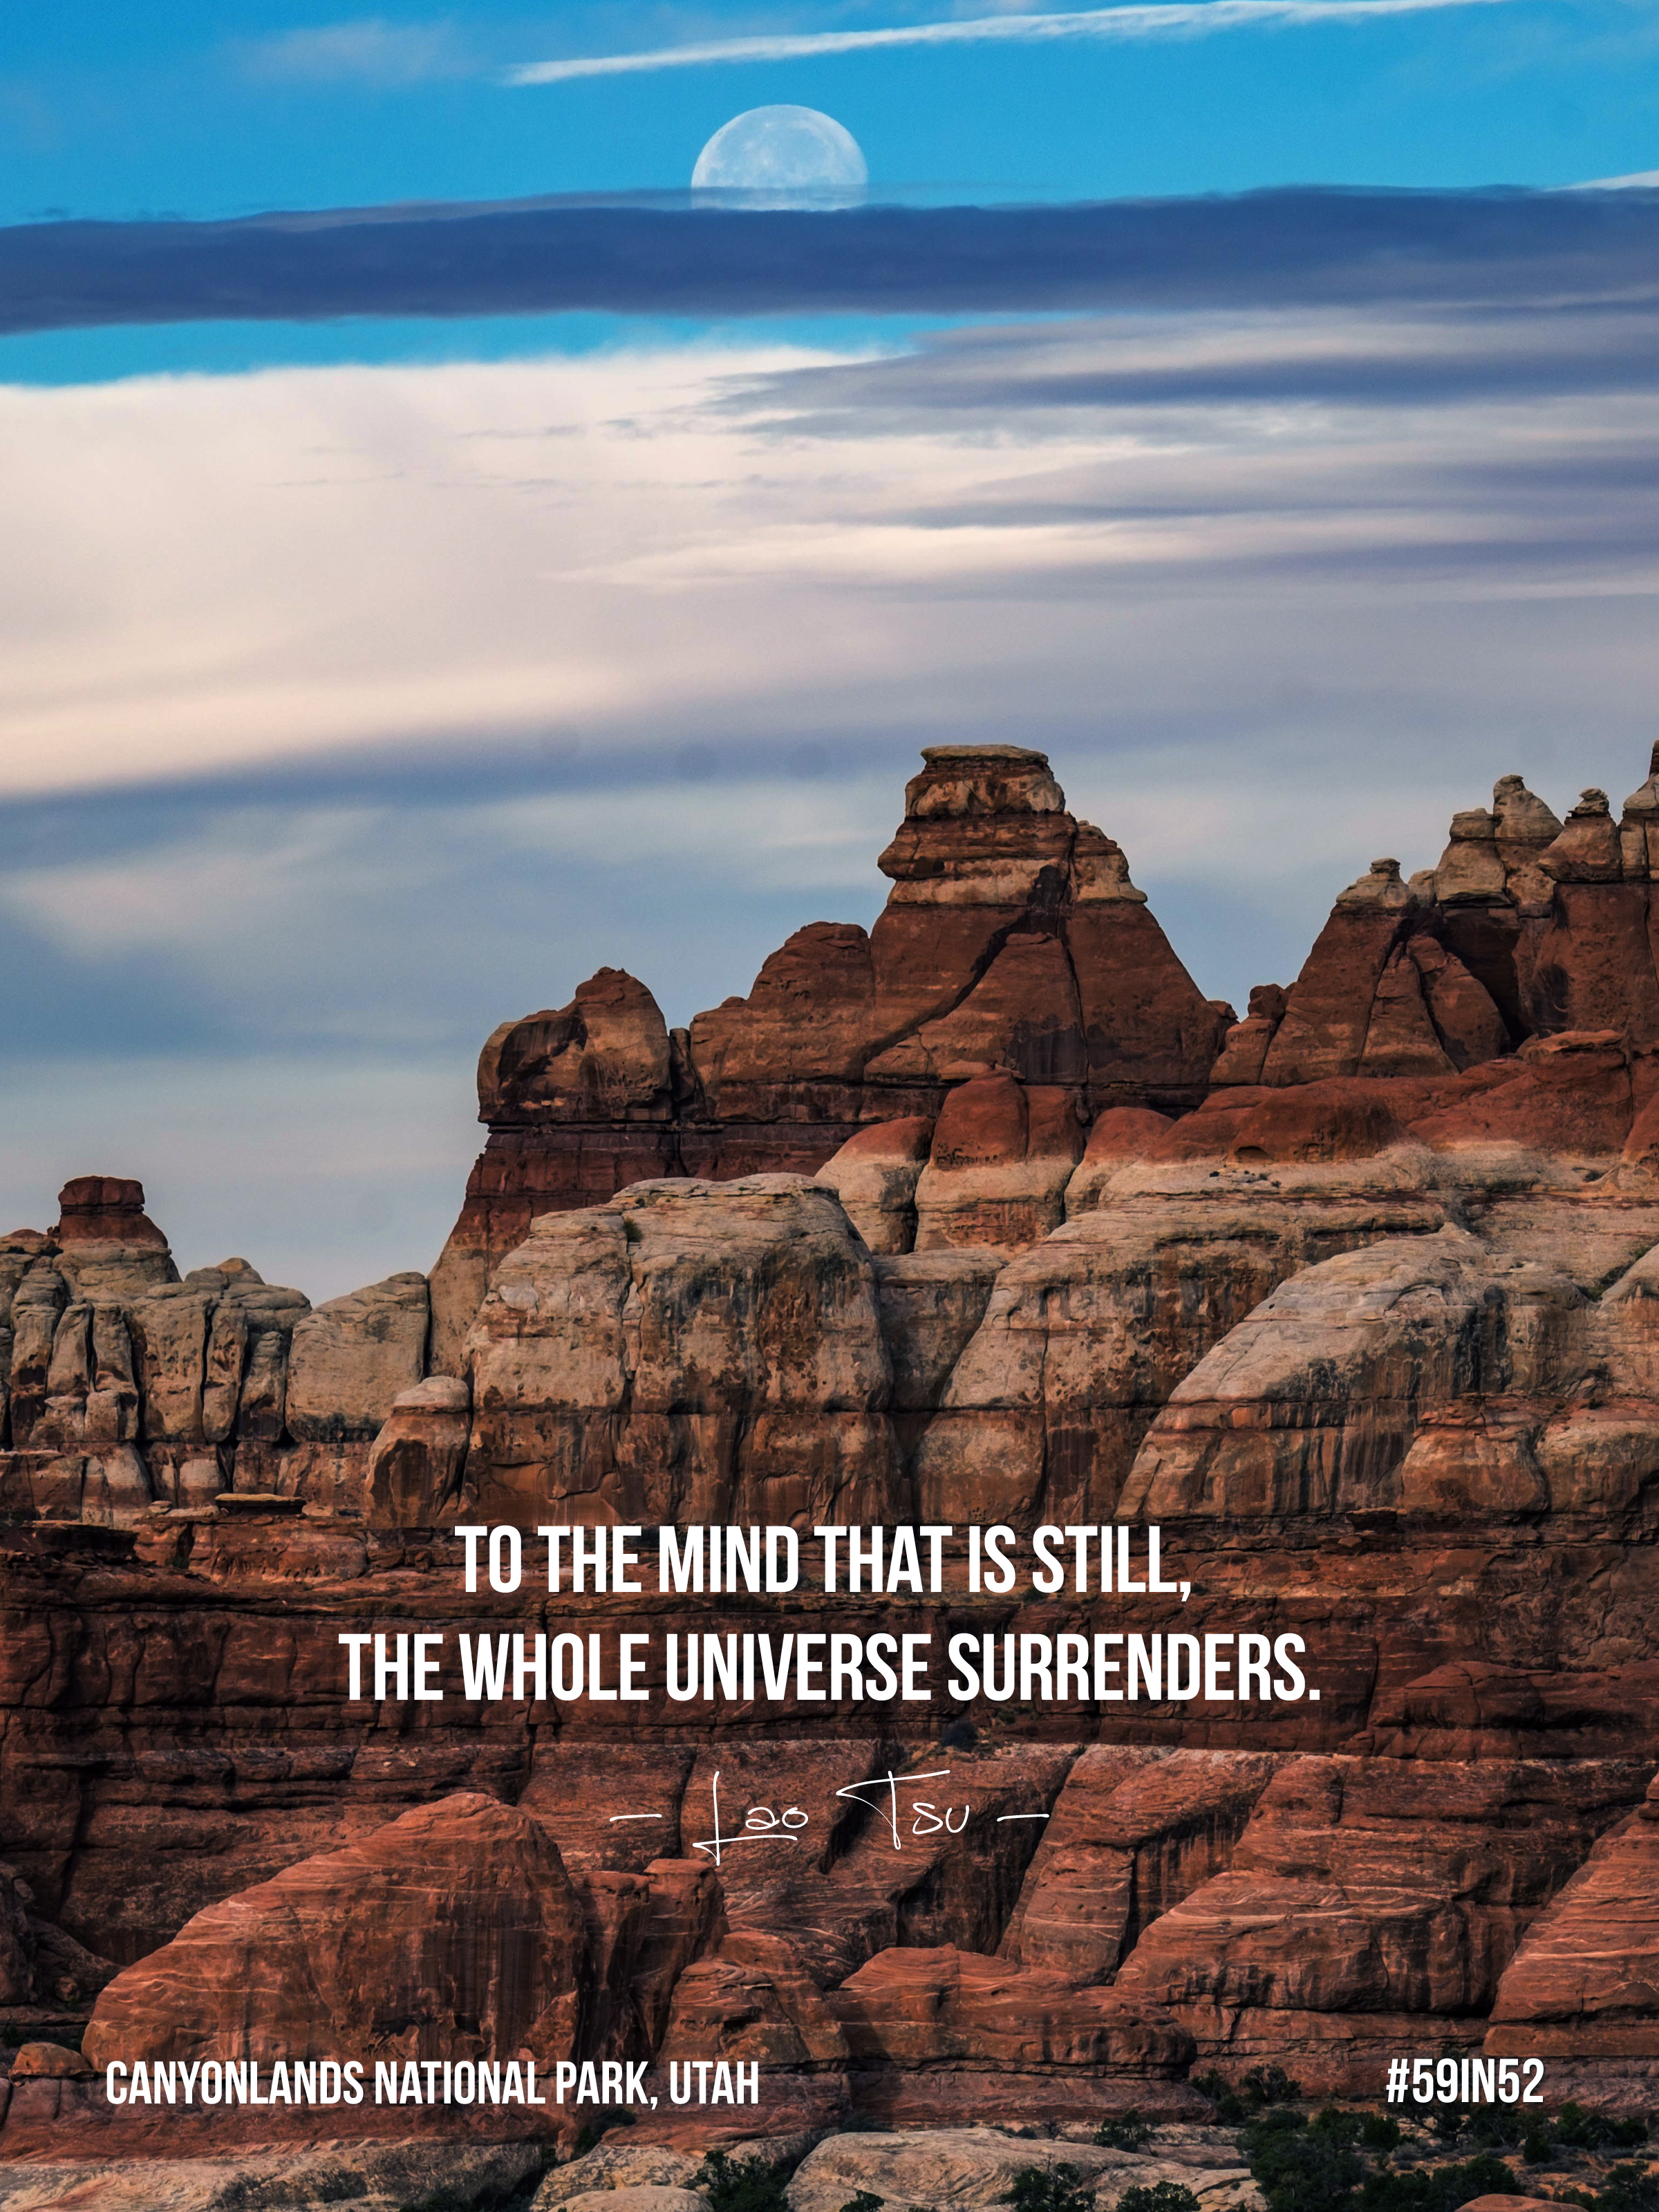 'To the mind that is still, the whole universe surrenders.' - Lao Tzu